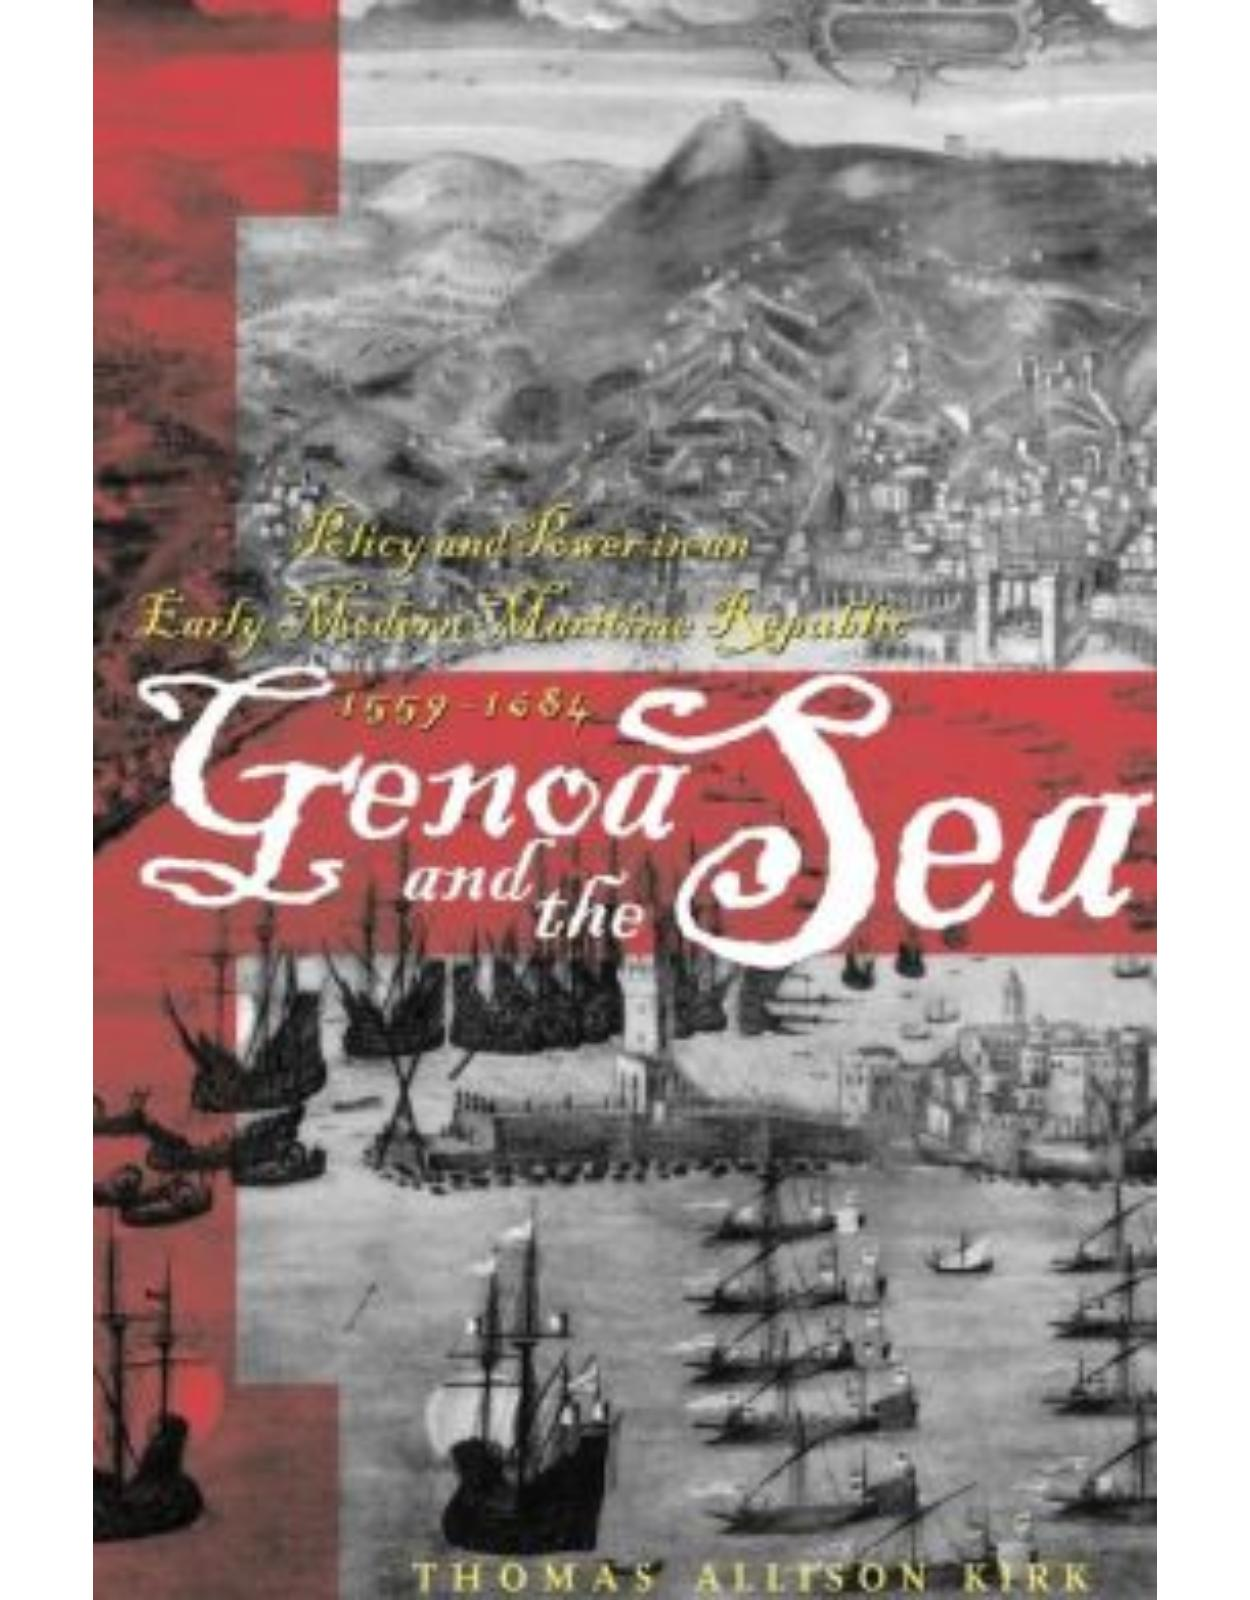 Genoa and the Sea. Policy and Power in an Early Modern Maritime Republic, 1559-1684